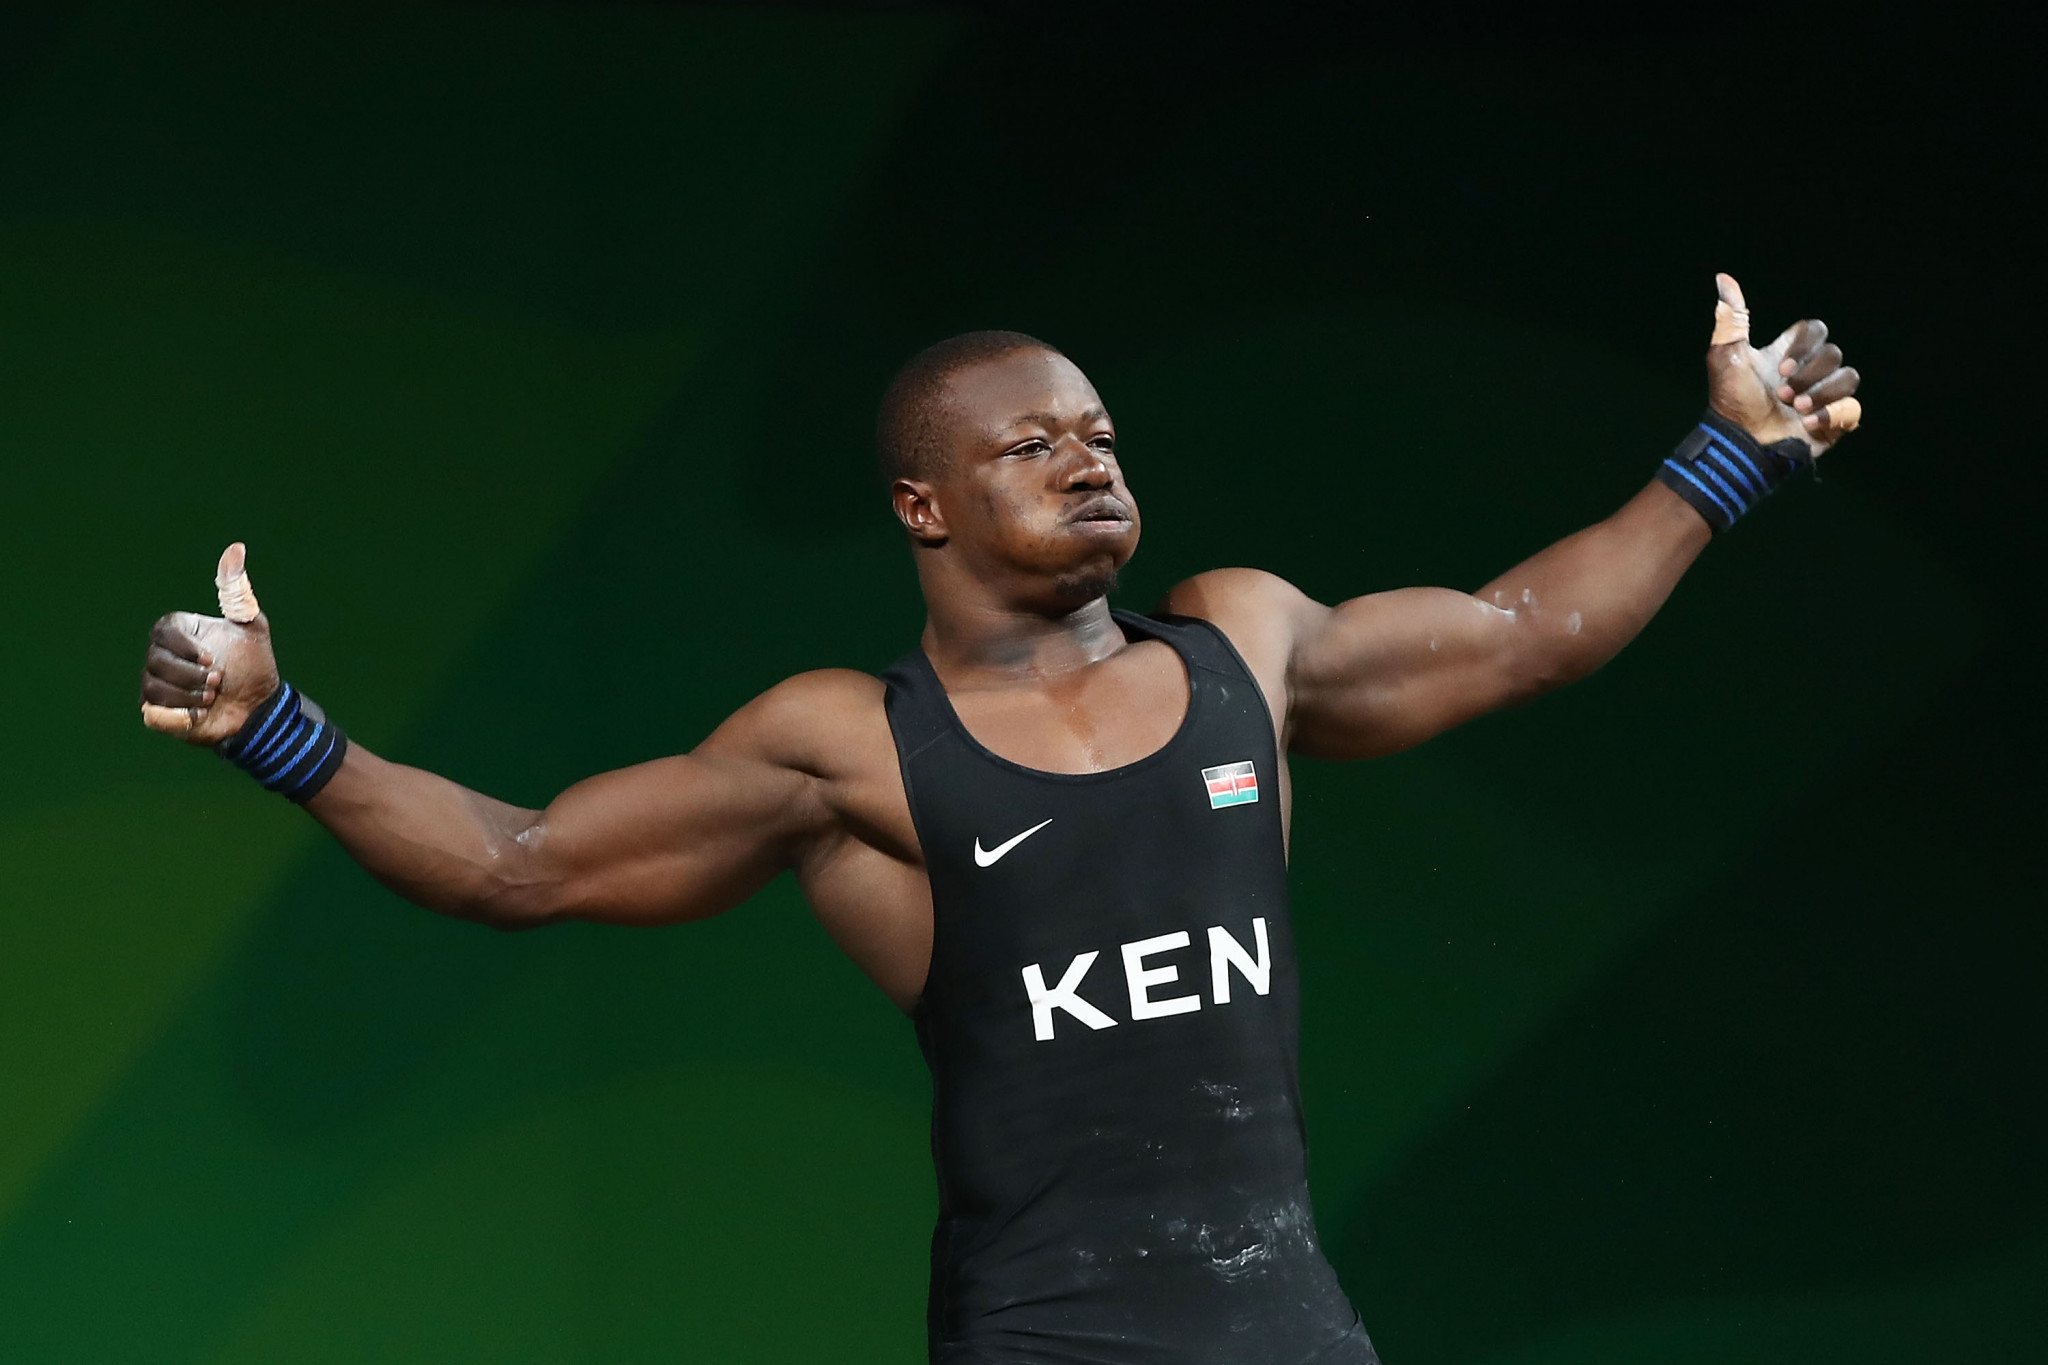 Kenya named as host of African Junior and Youth Weightlifting Championships